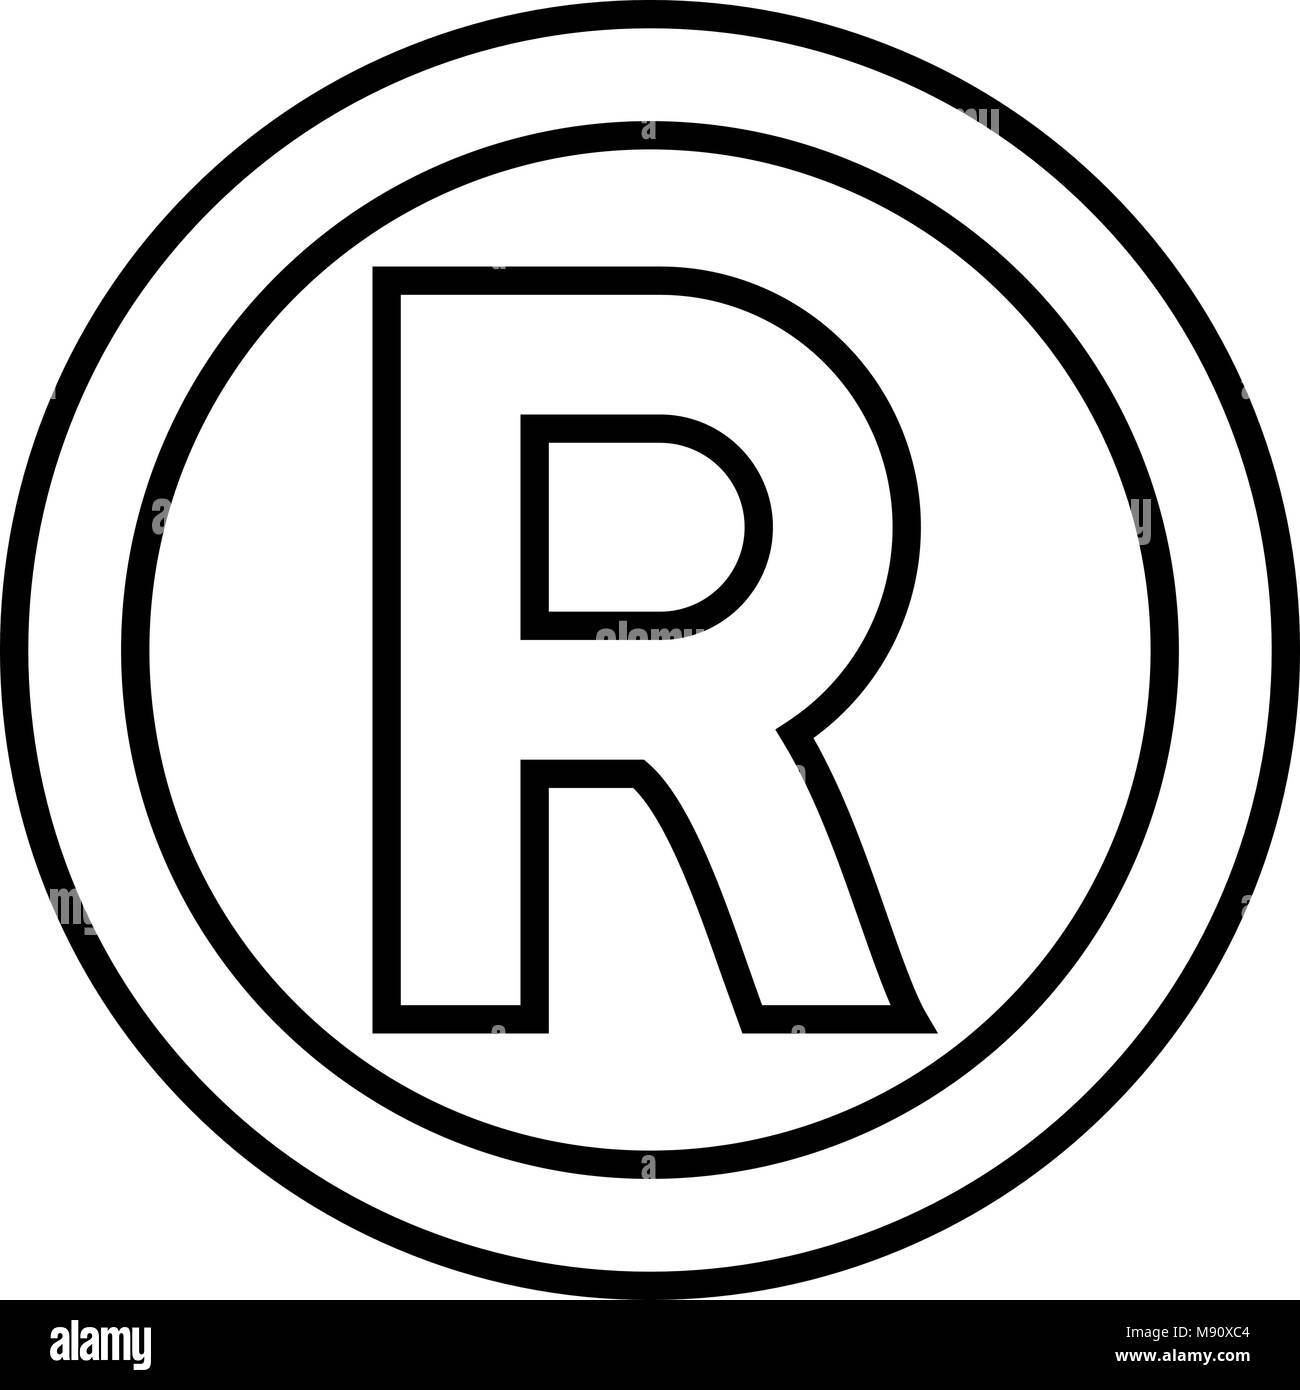 Registered trademark symbol black and white stock photos images symbol copyright icon black color vector illustration flat style simple image stock image biocorpaavc Choice Image